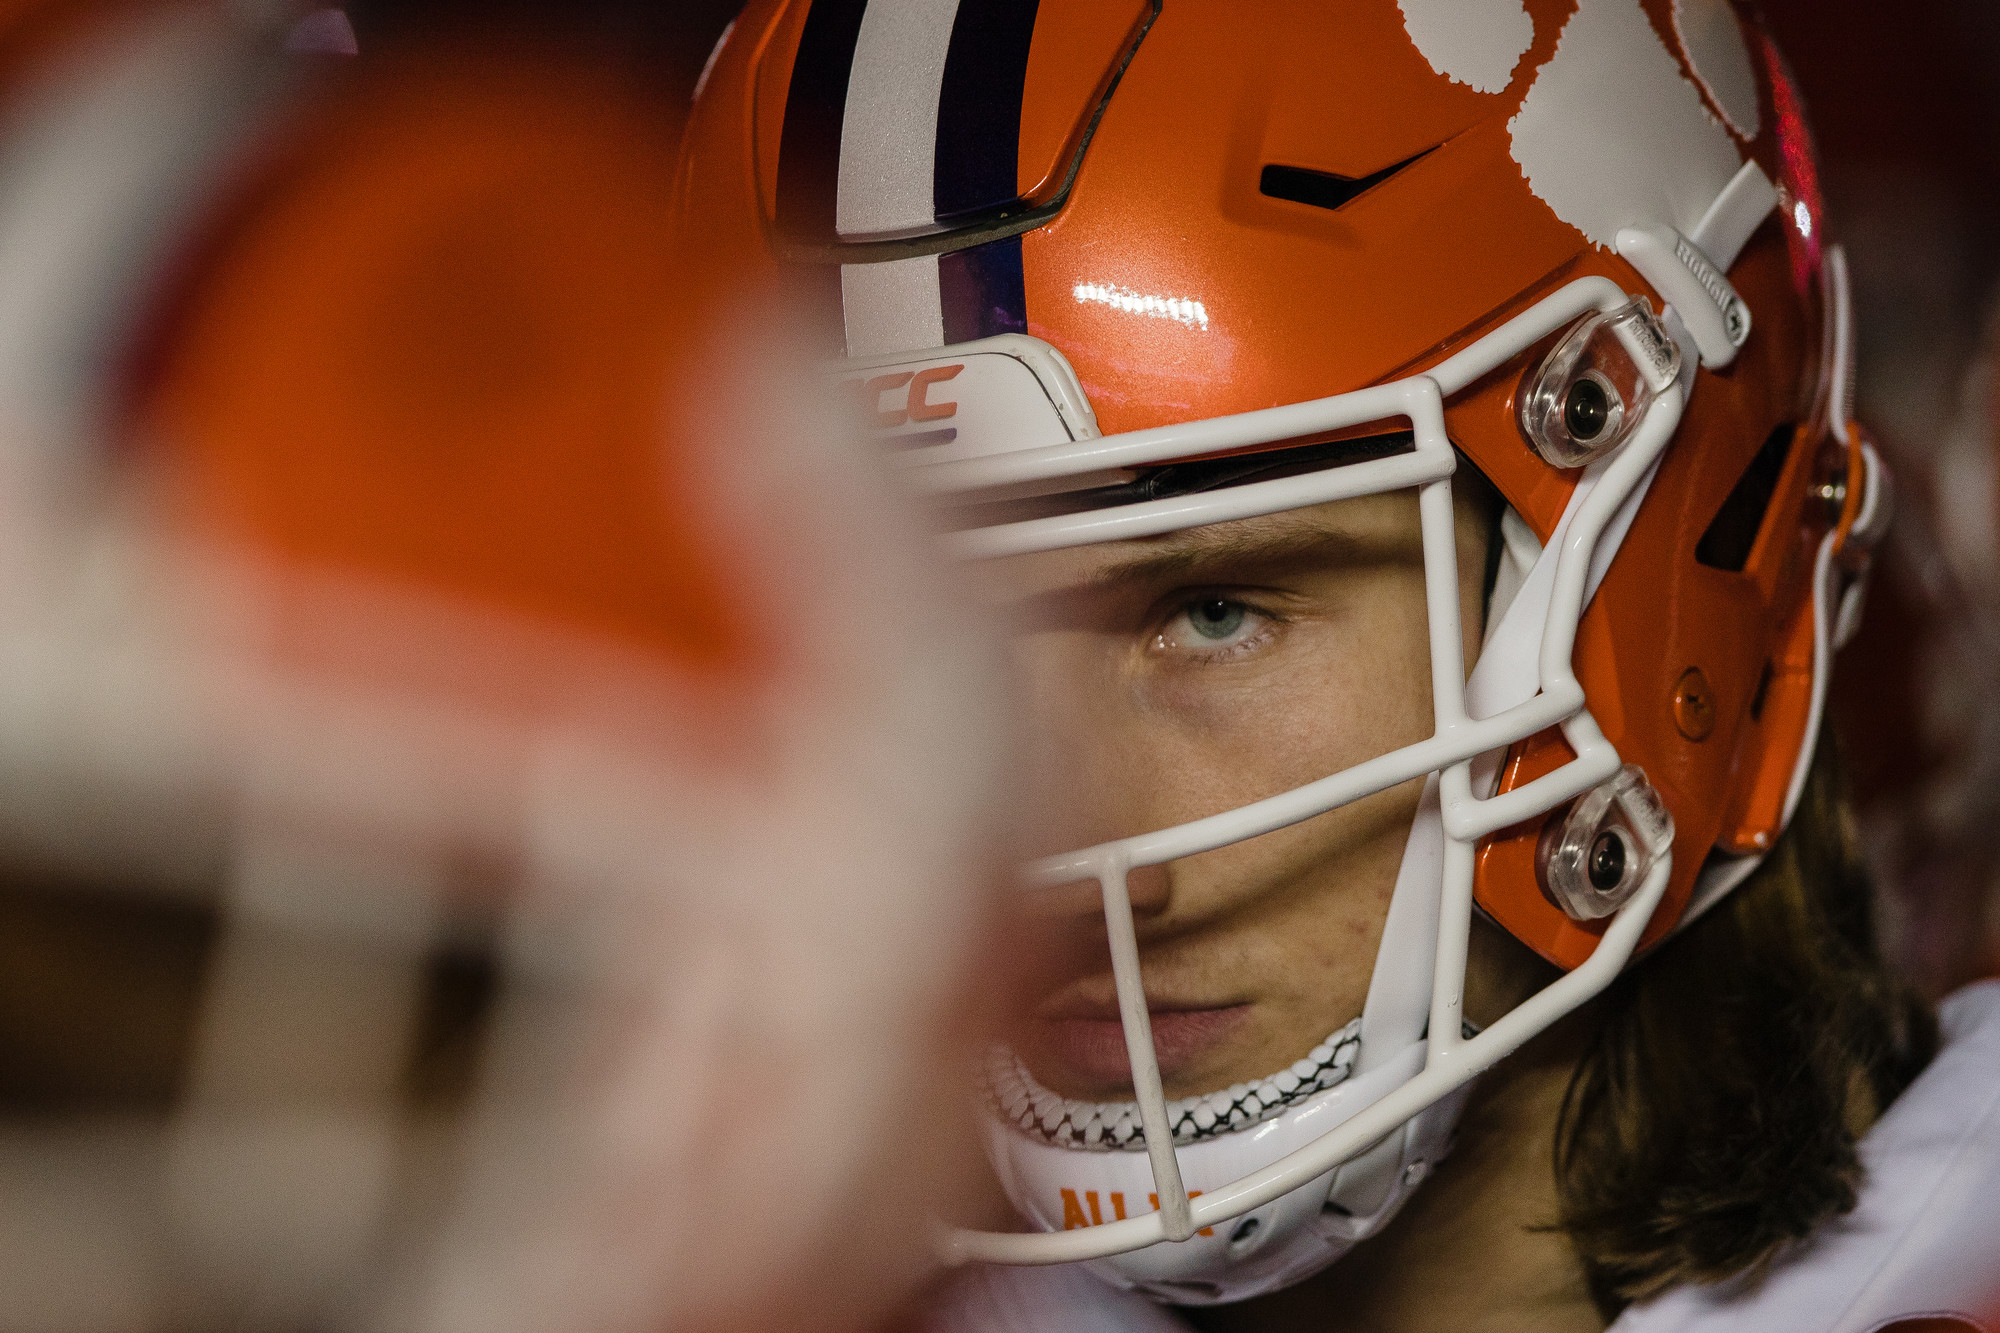 Clemson quarterback Trevor Lawrence, the game's offensive MVP, in the second half of the 2019 CFP National Championship at Levi's Stadium in Santa Clara, California, on Monday, Jan. 7. The Tigers routed Alabama to win 44-16.